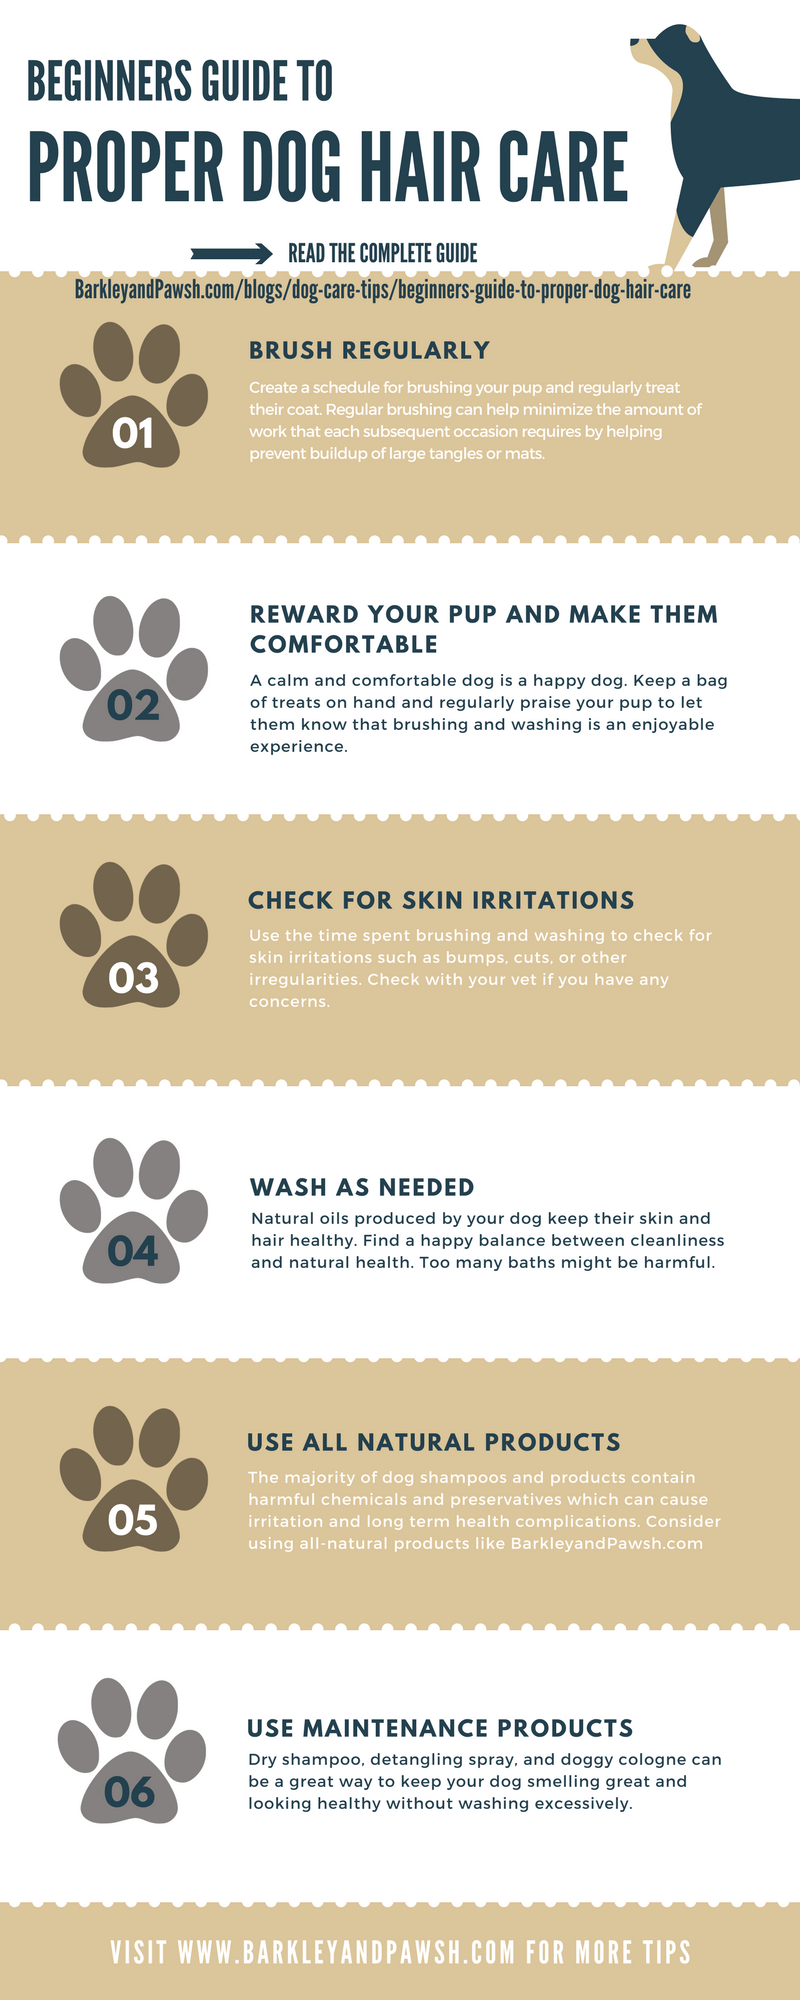 dog-hair-care-infographic